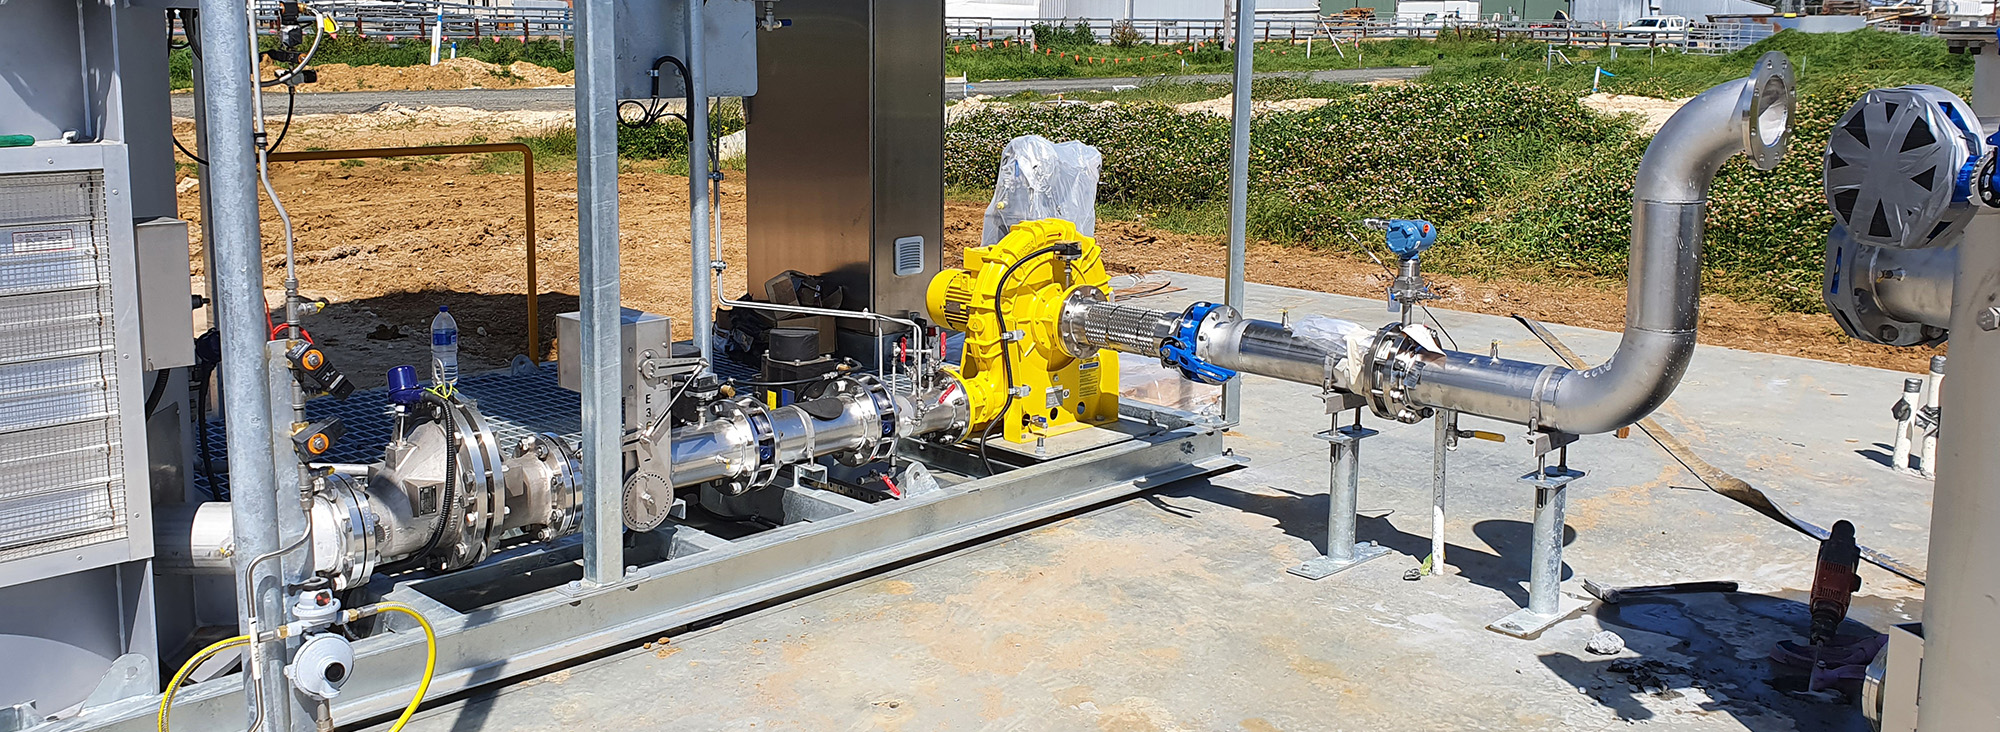 Pumping biogas to accelerate Australia's shift to renewable energy